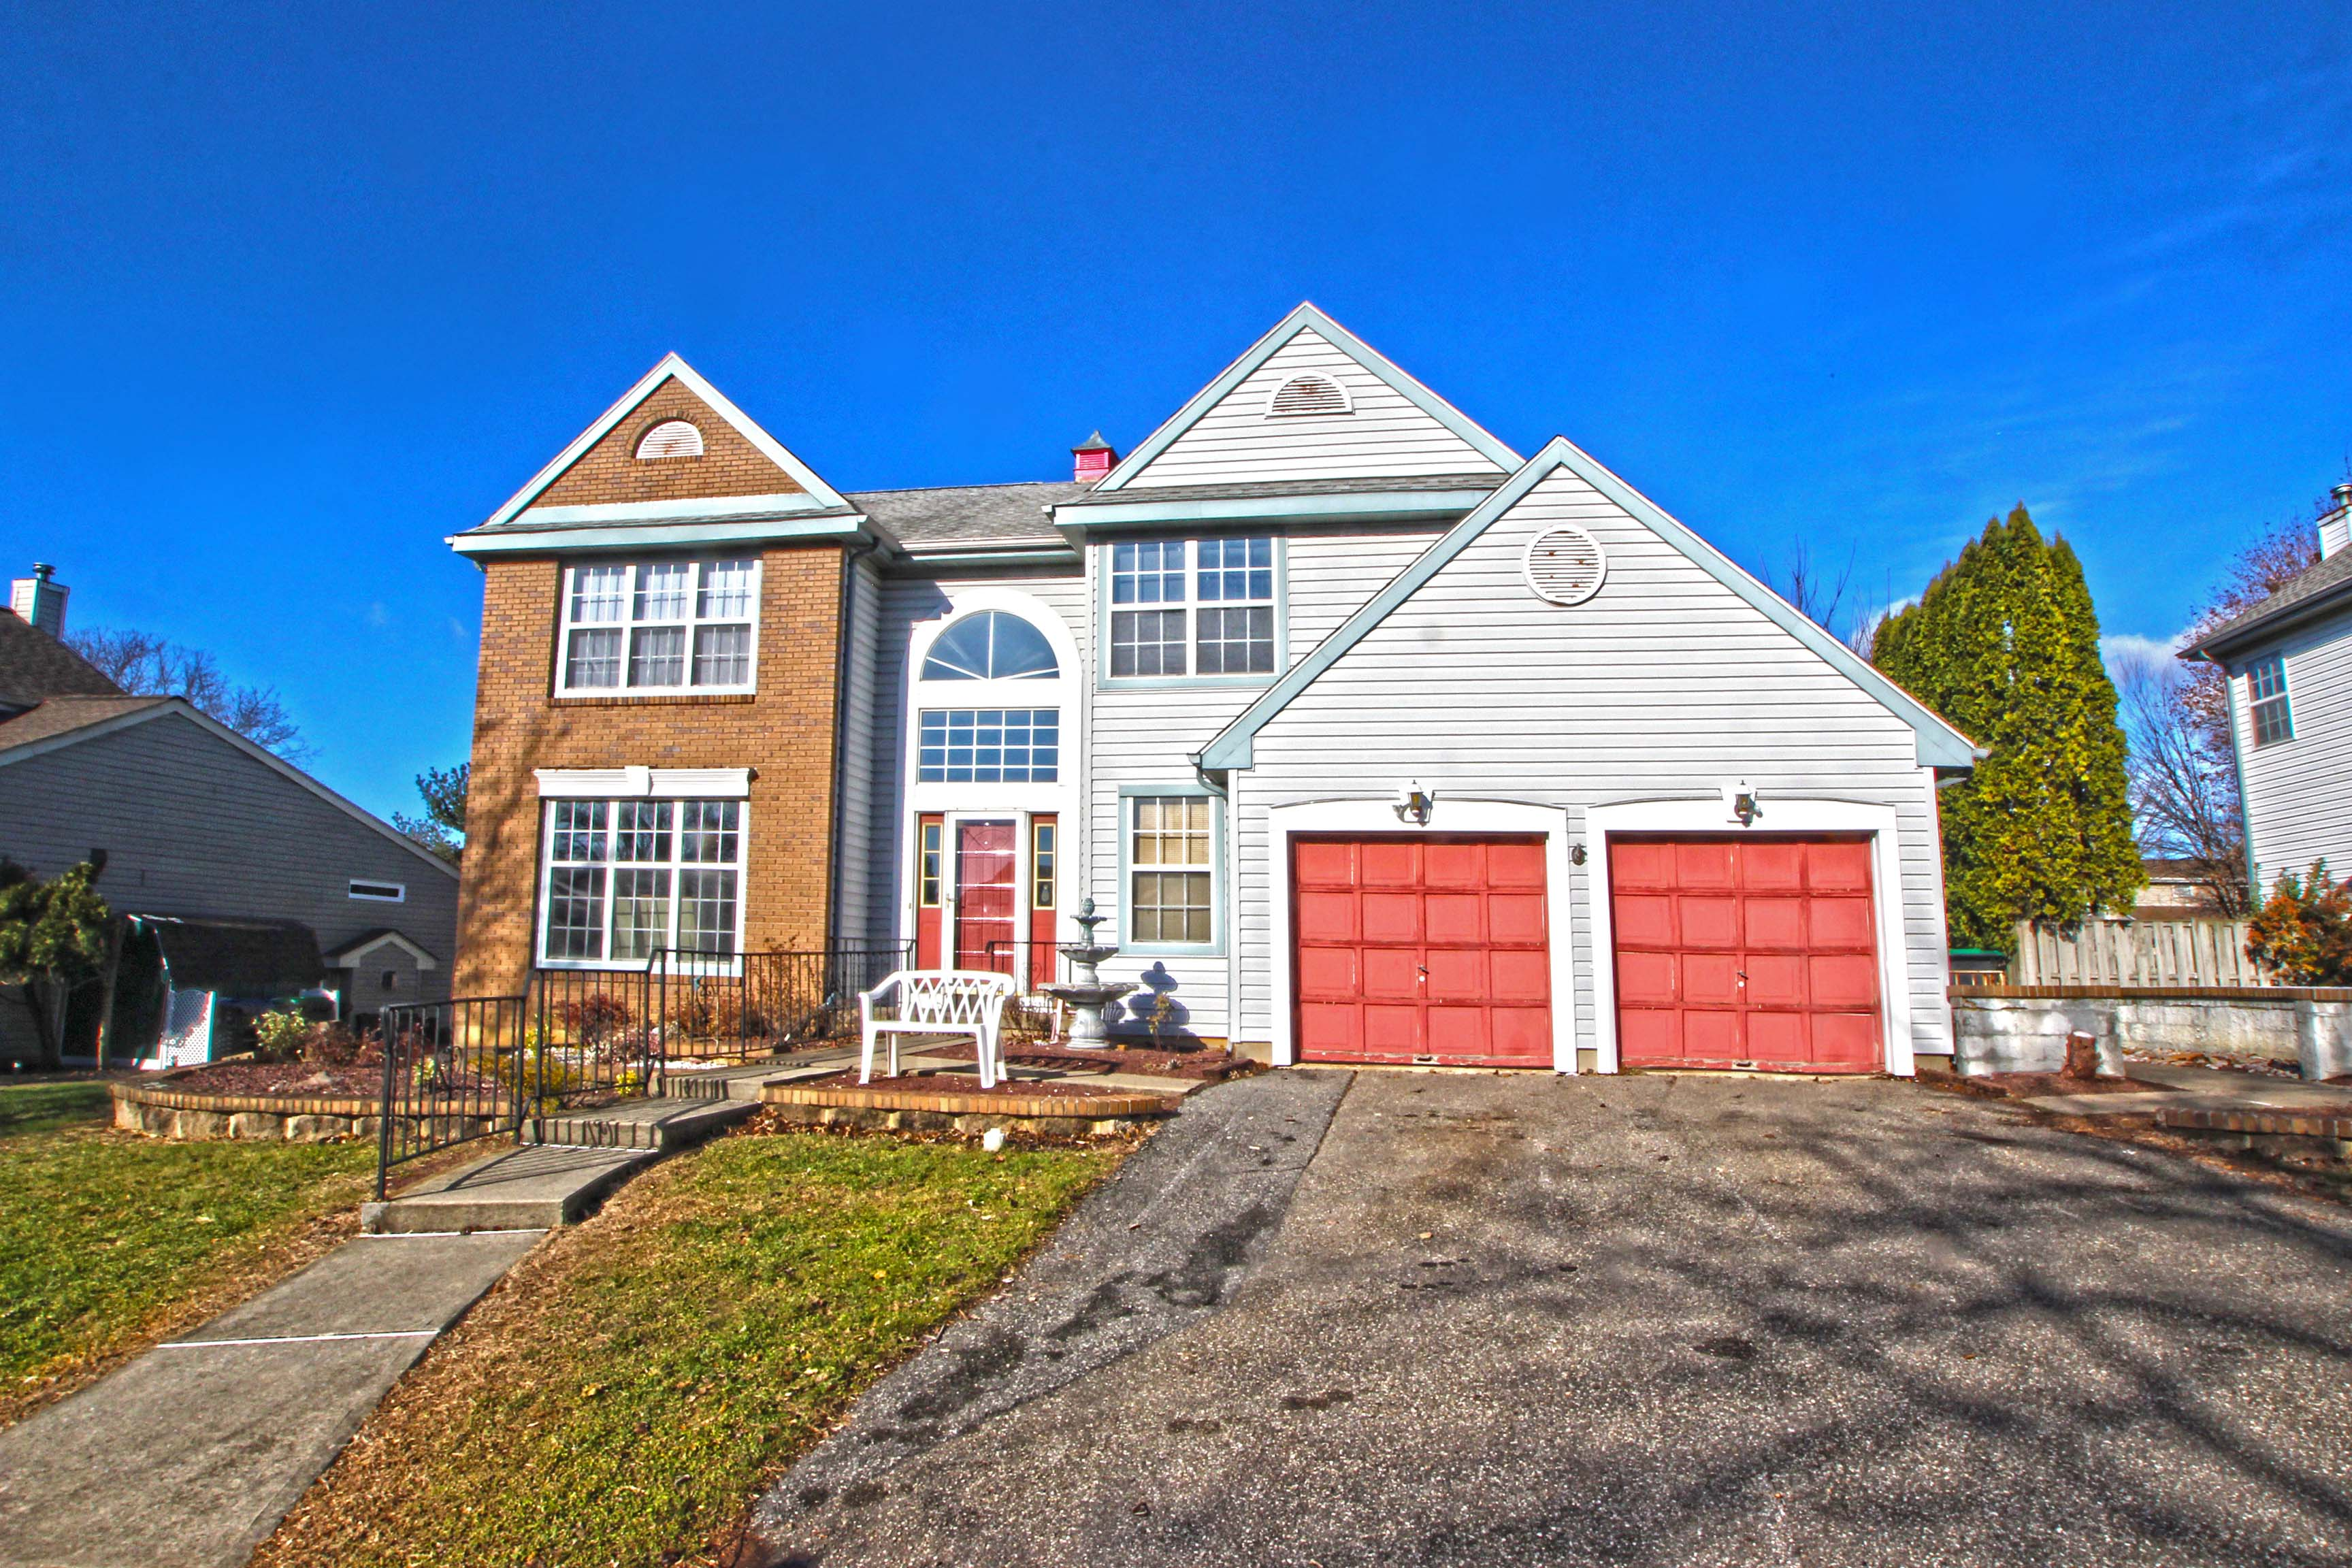 Bethlehem Twp Home For Sale Just Listed in Pennway Estates!